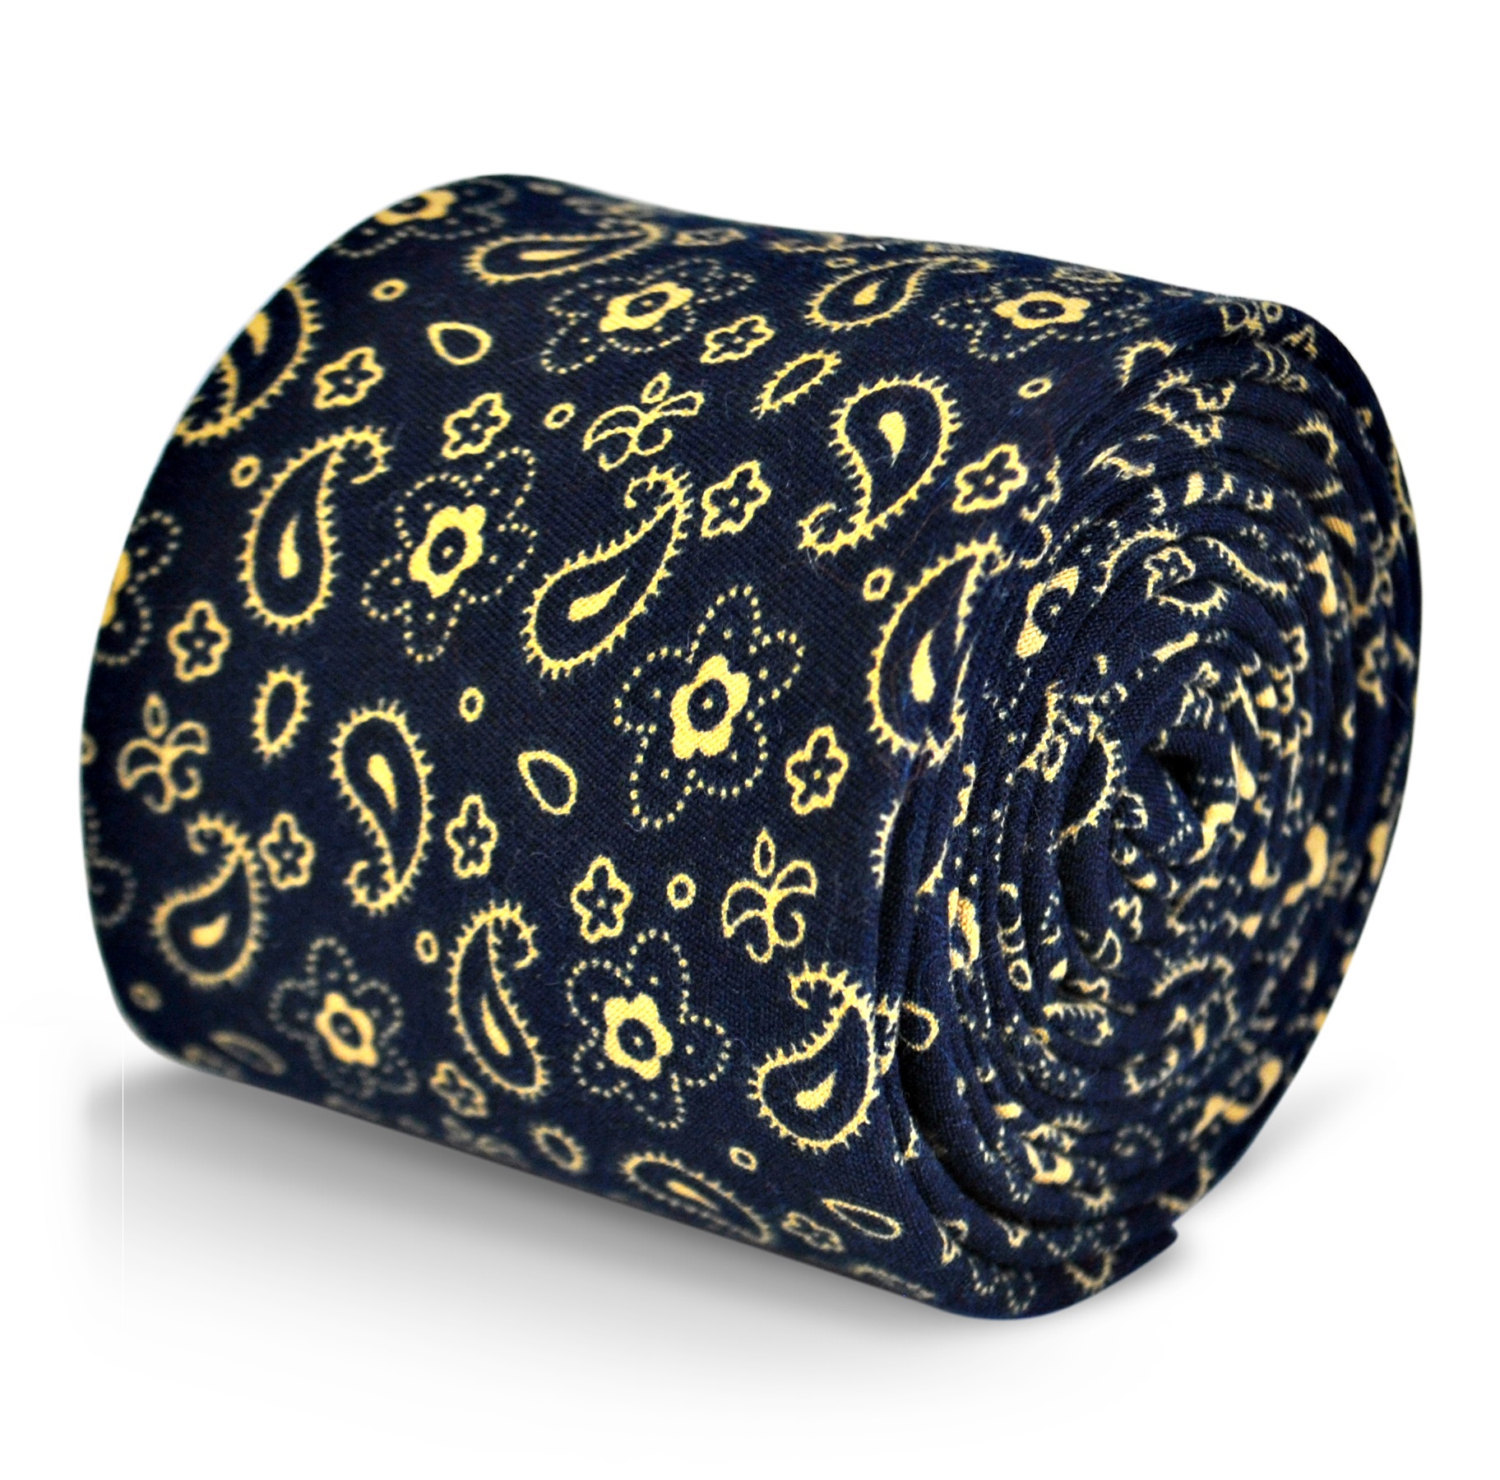 navy blue with paisley pattern cotton linen design tie by Frederick Thomas FT312